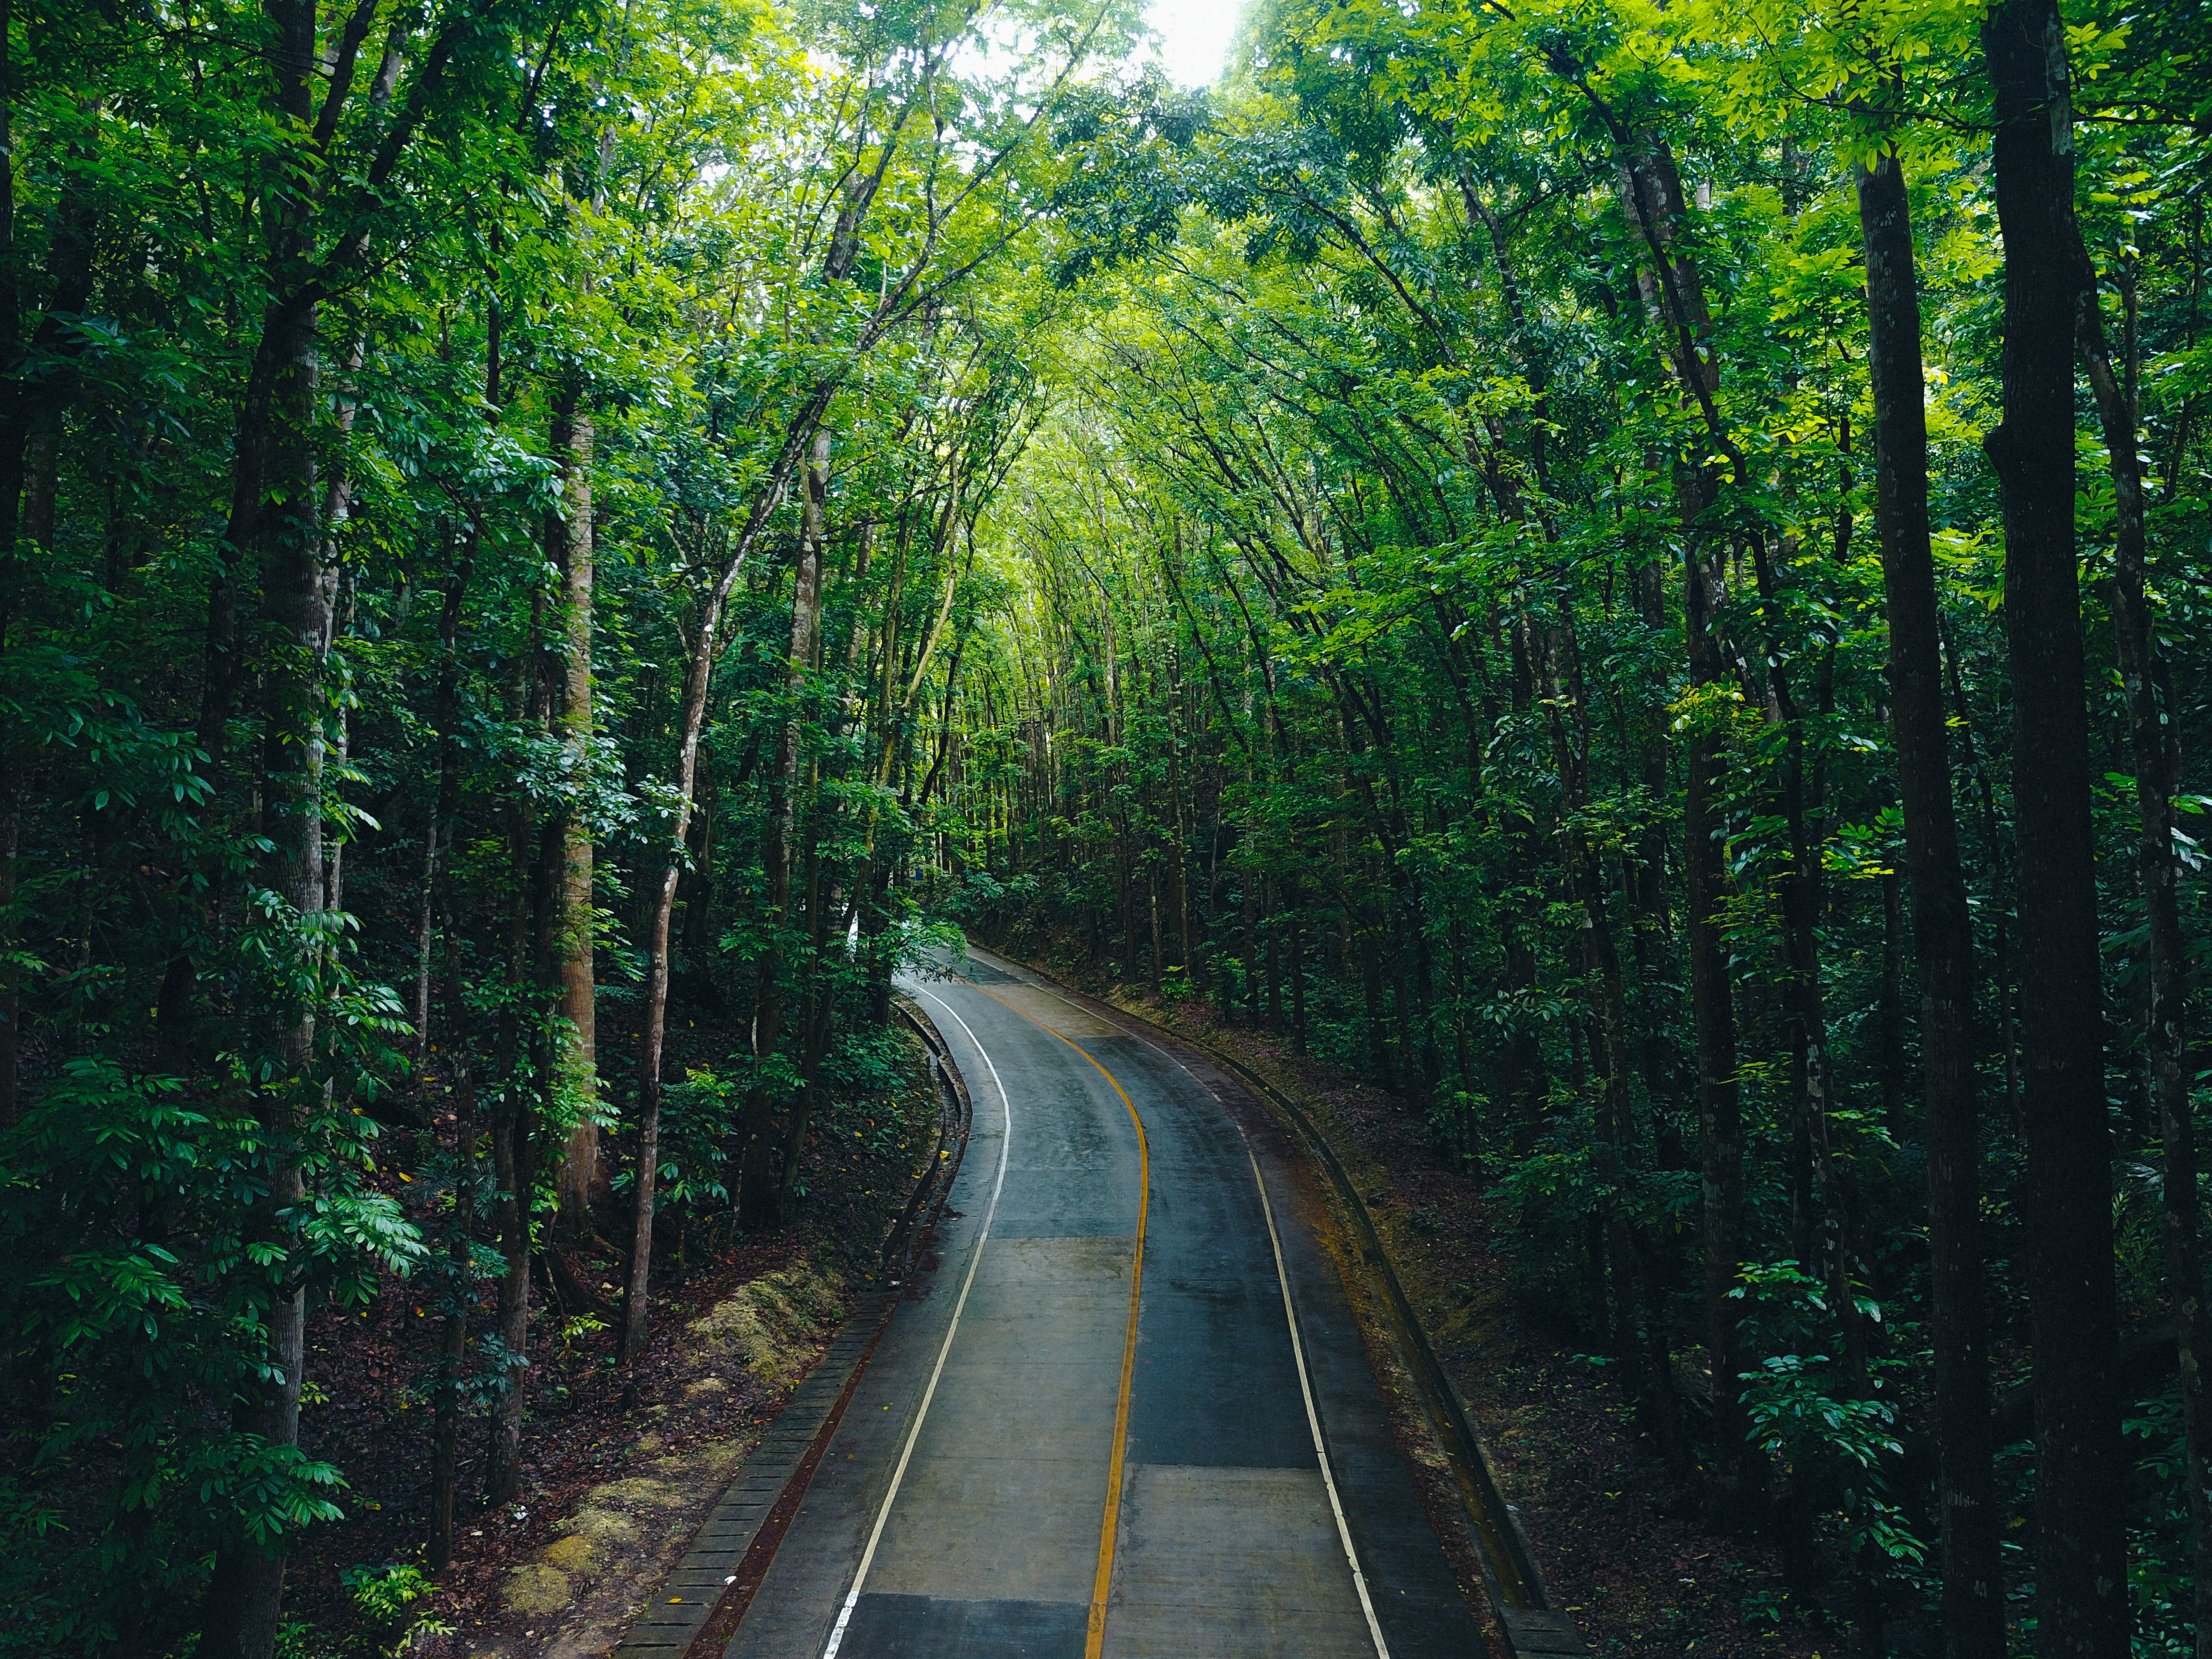 curved road surrounded by trees